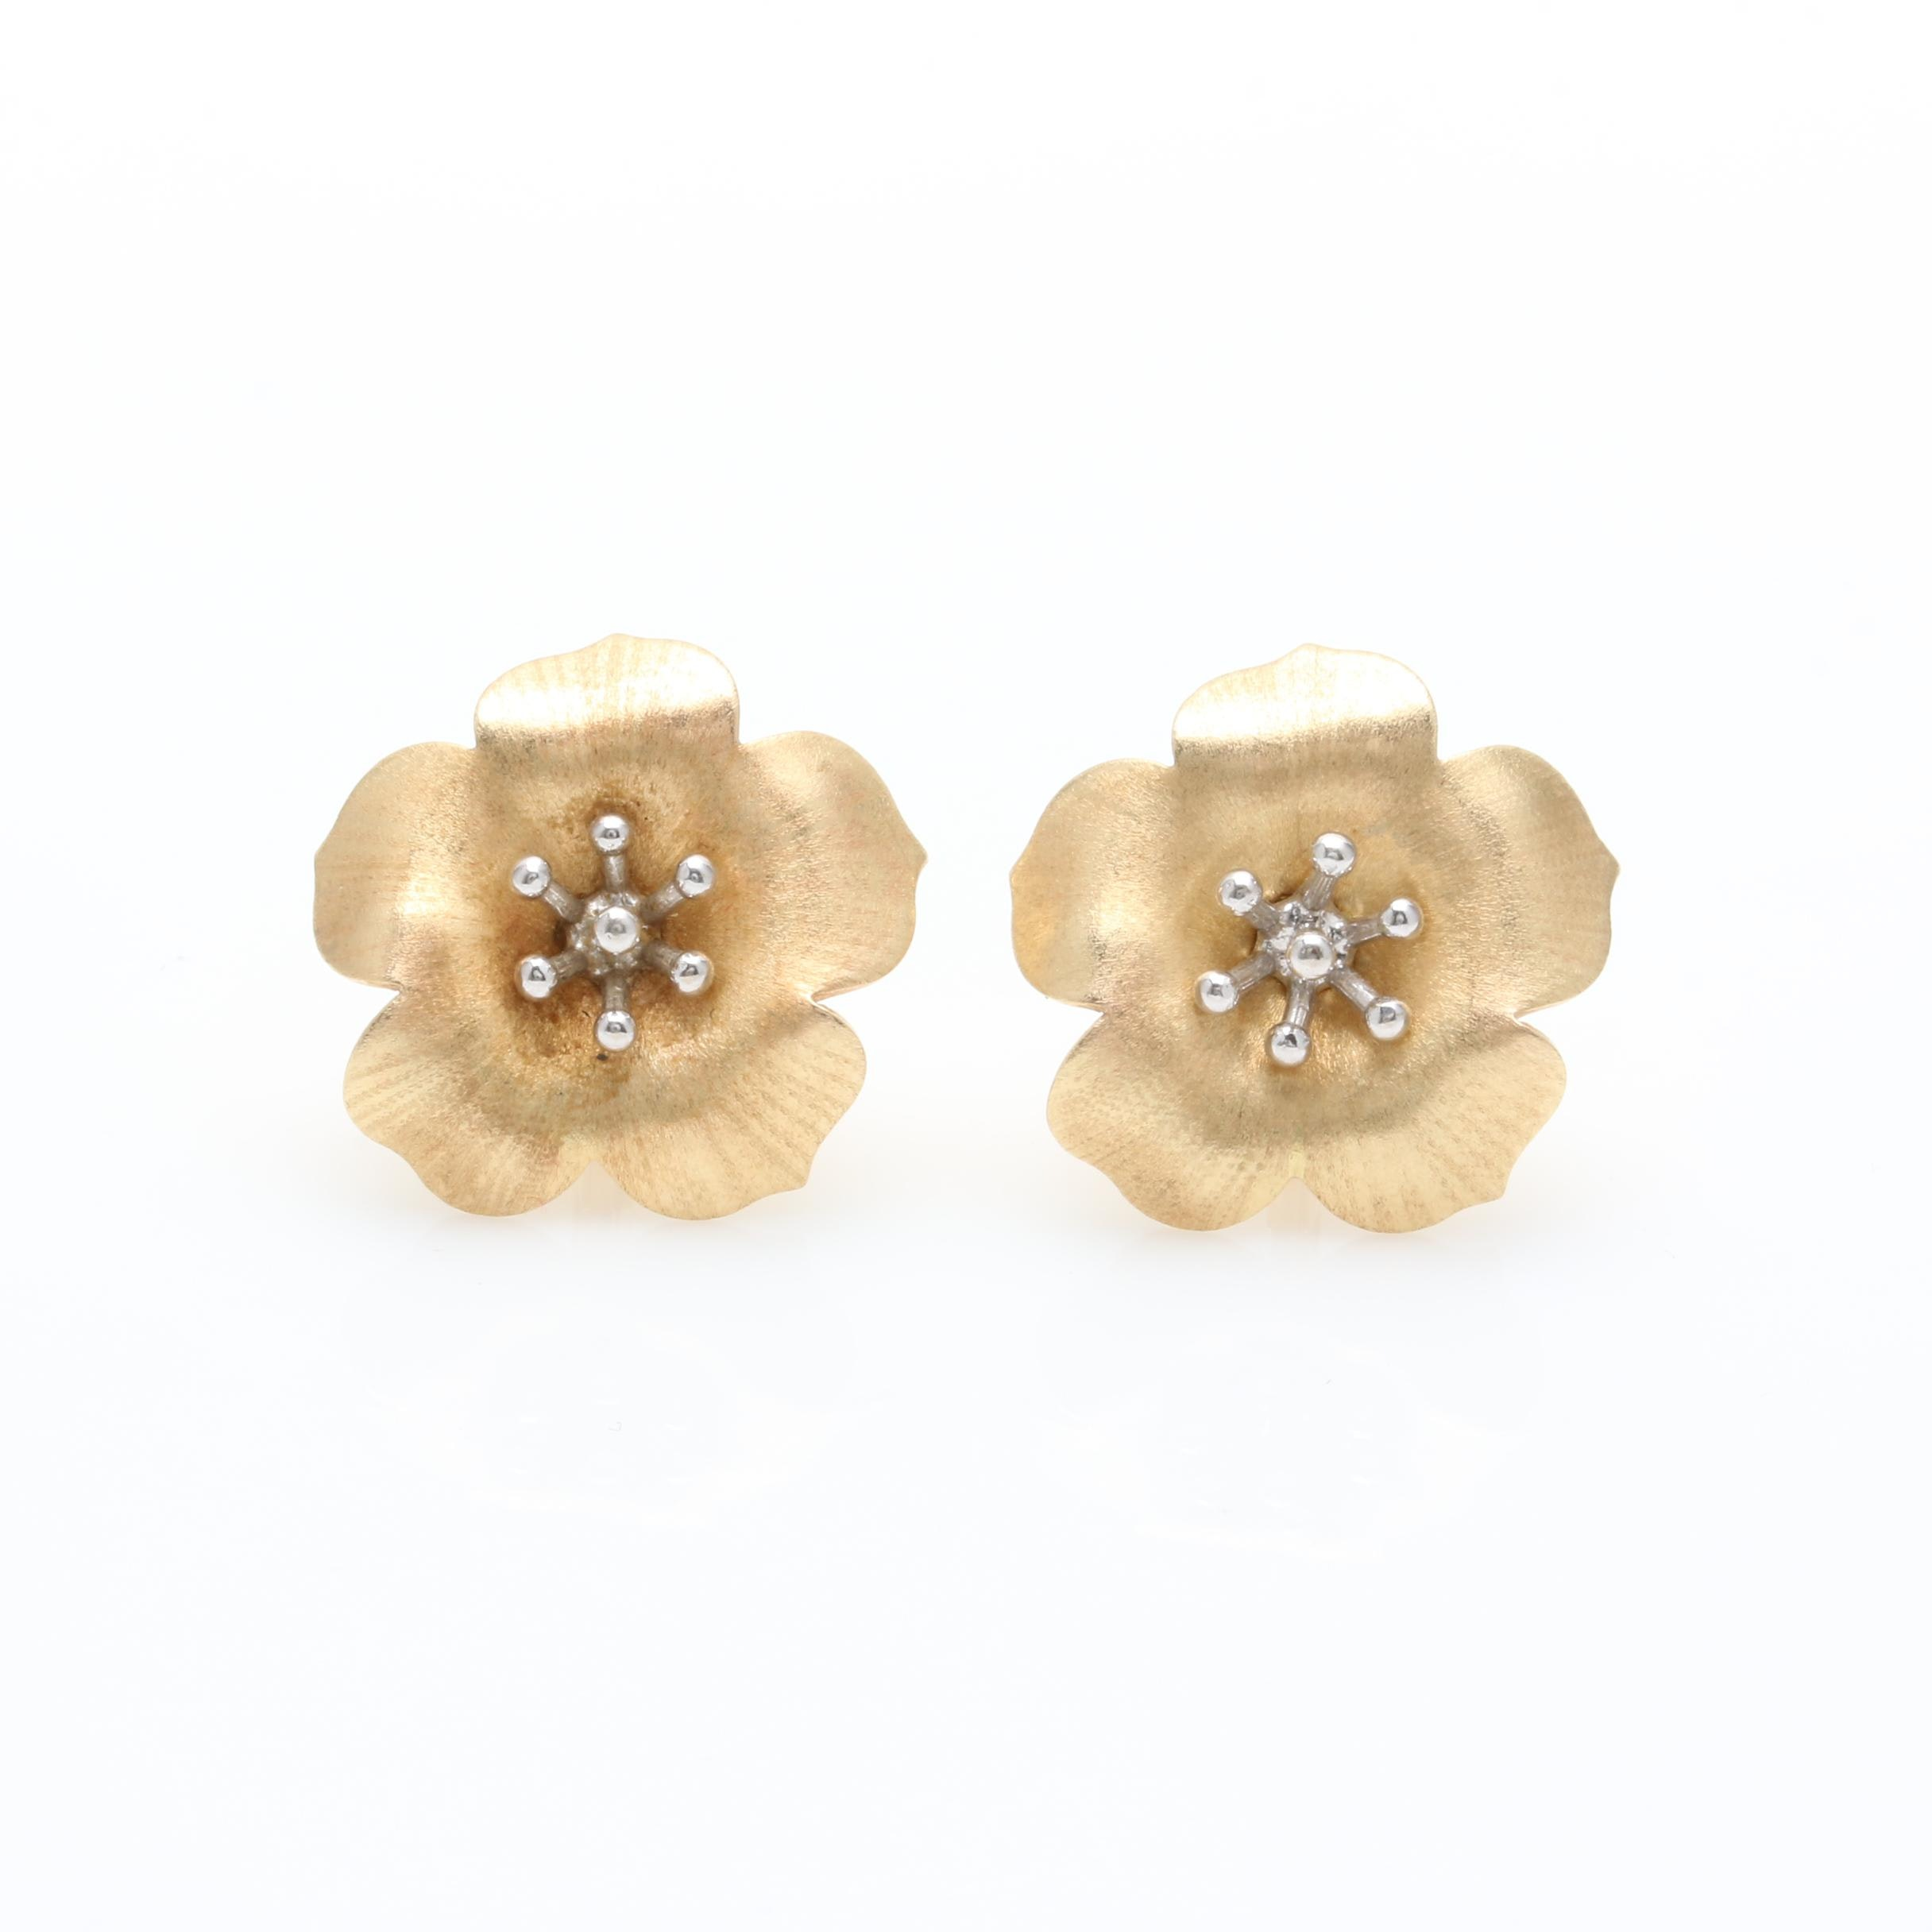 14K Yellow Gold Flower Earrings with 14K White Gold Accents